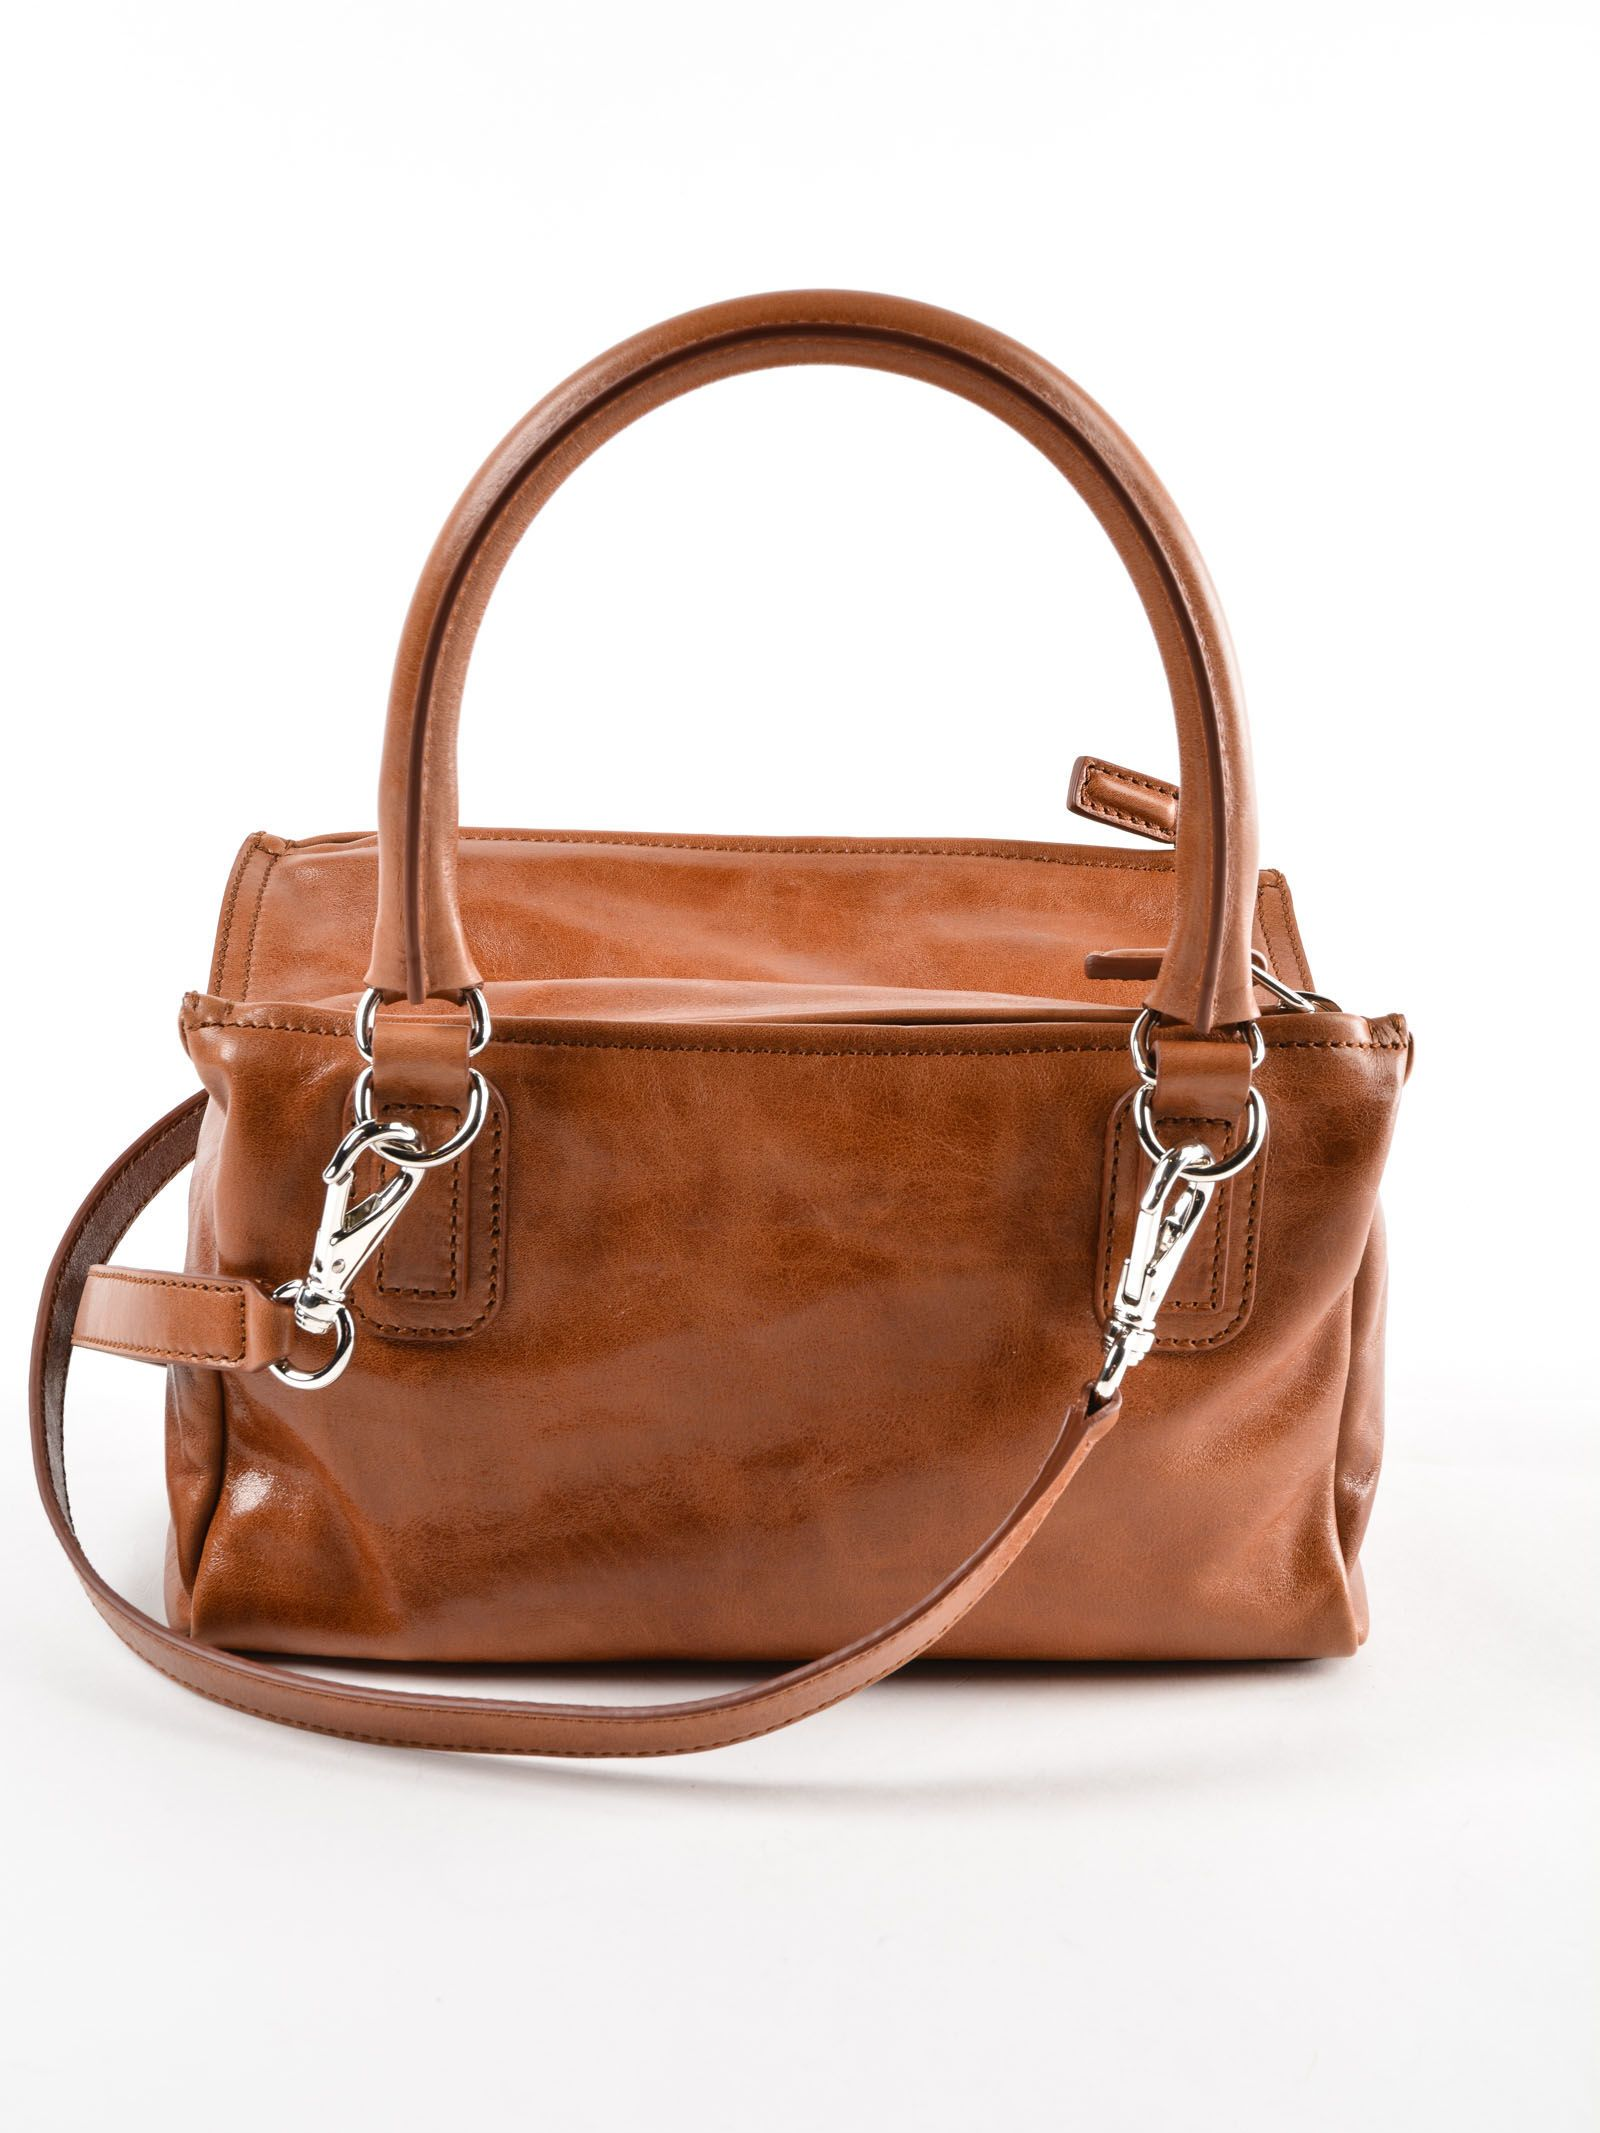 Shoulder Bag for Women On Sale, Cognac, Leather, 2017, one size Givenchy